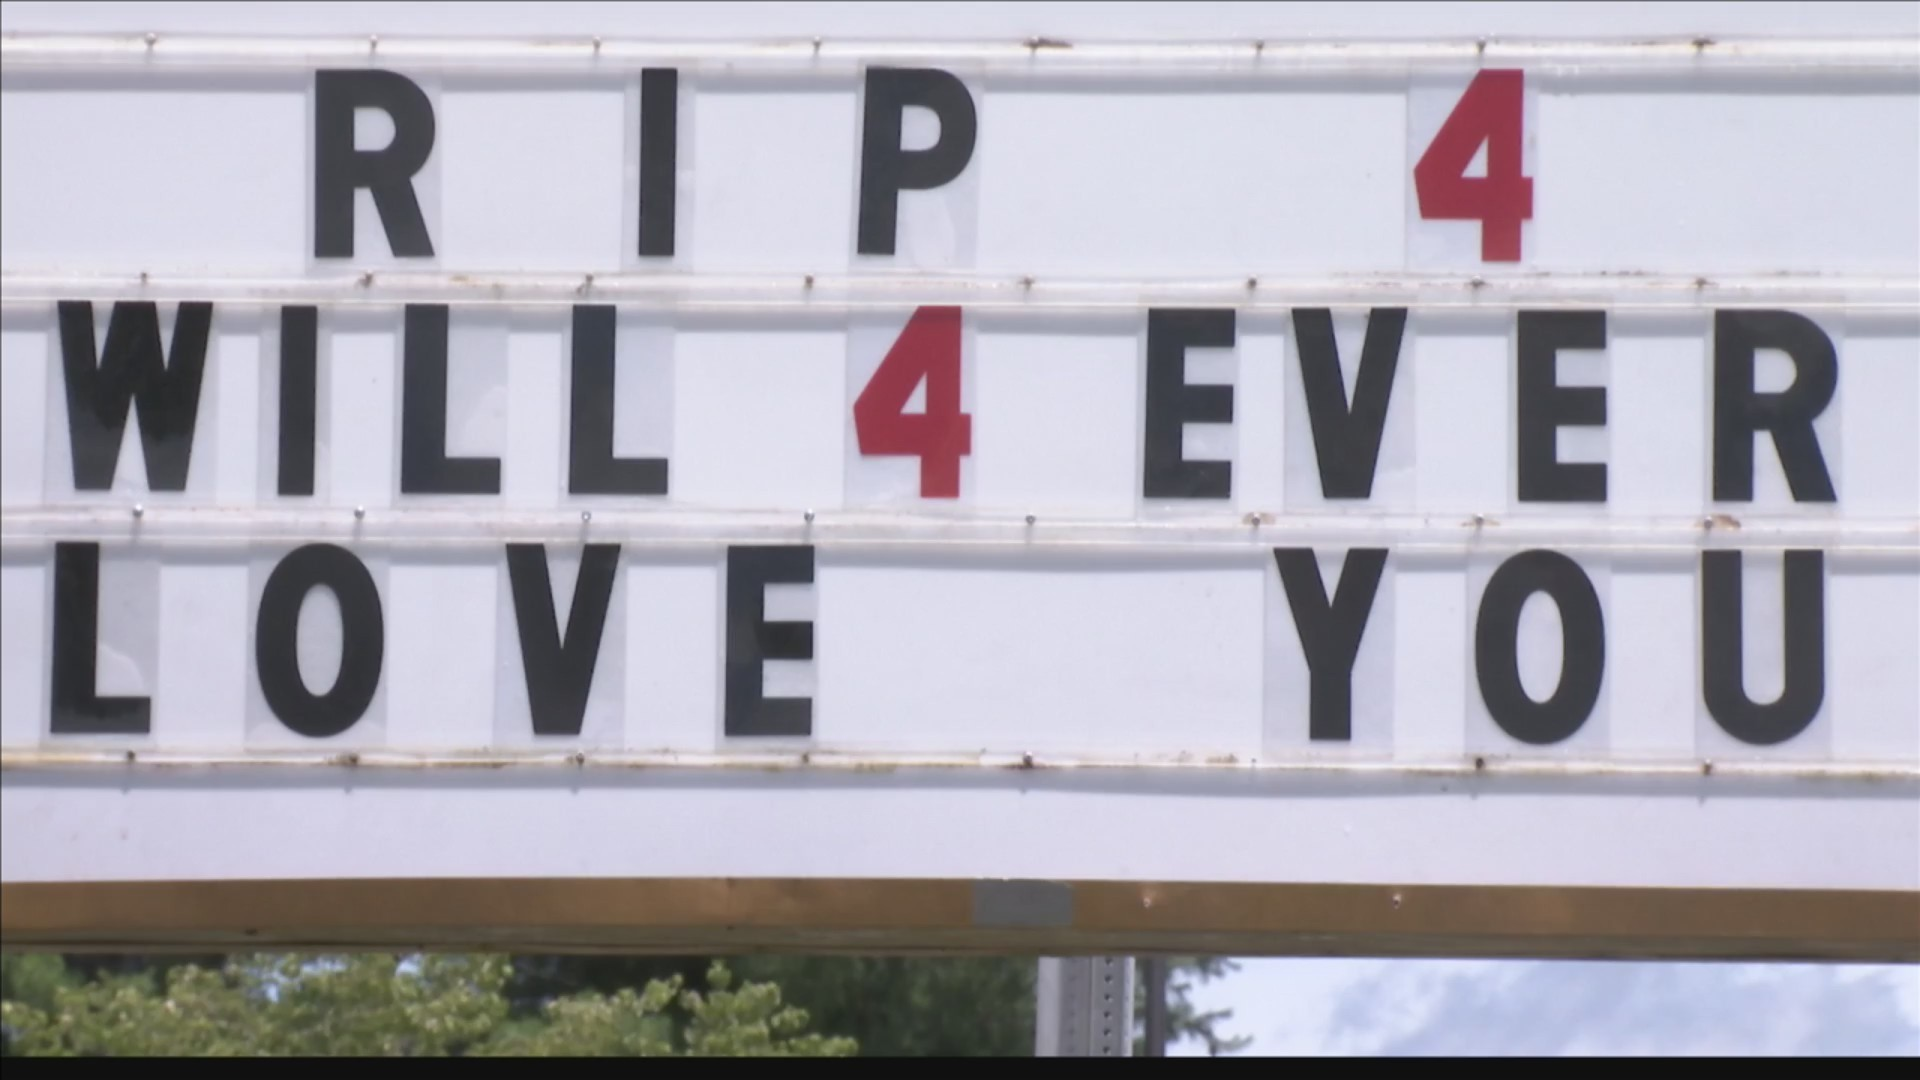 Fiesta Acapulco employees remember coworkers who died